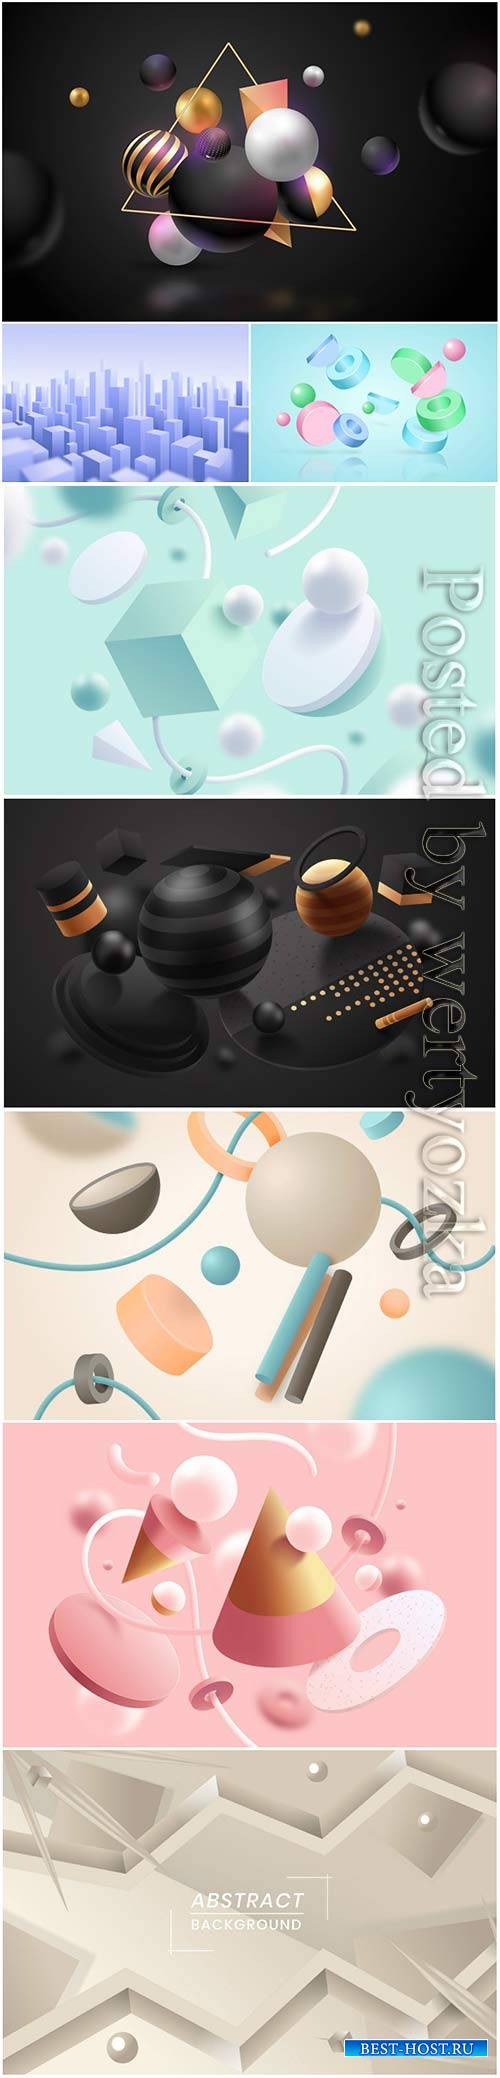 Abstract vector background, 3d models template # 5